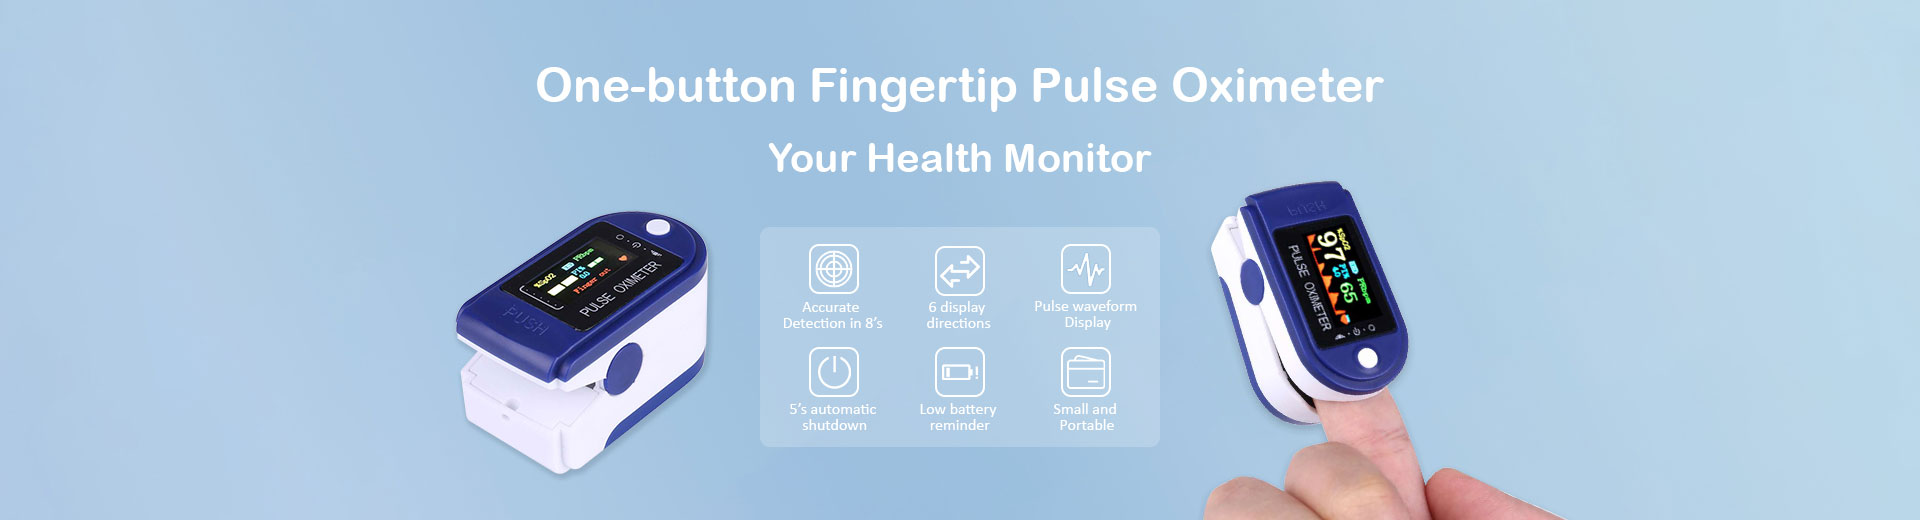 One-button Fingertip Pulse Oximeter